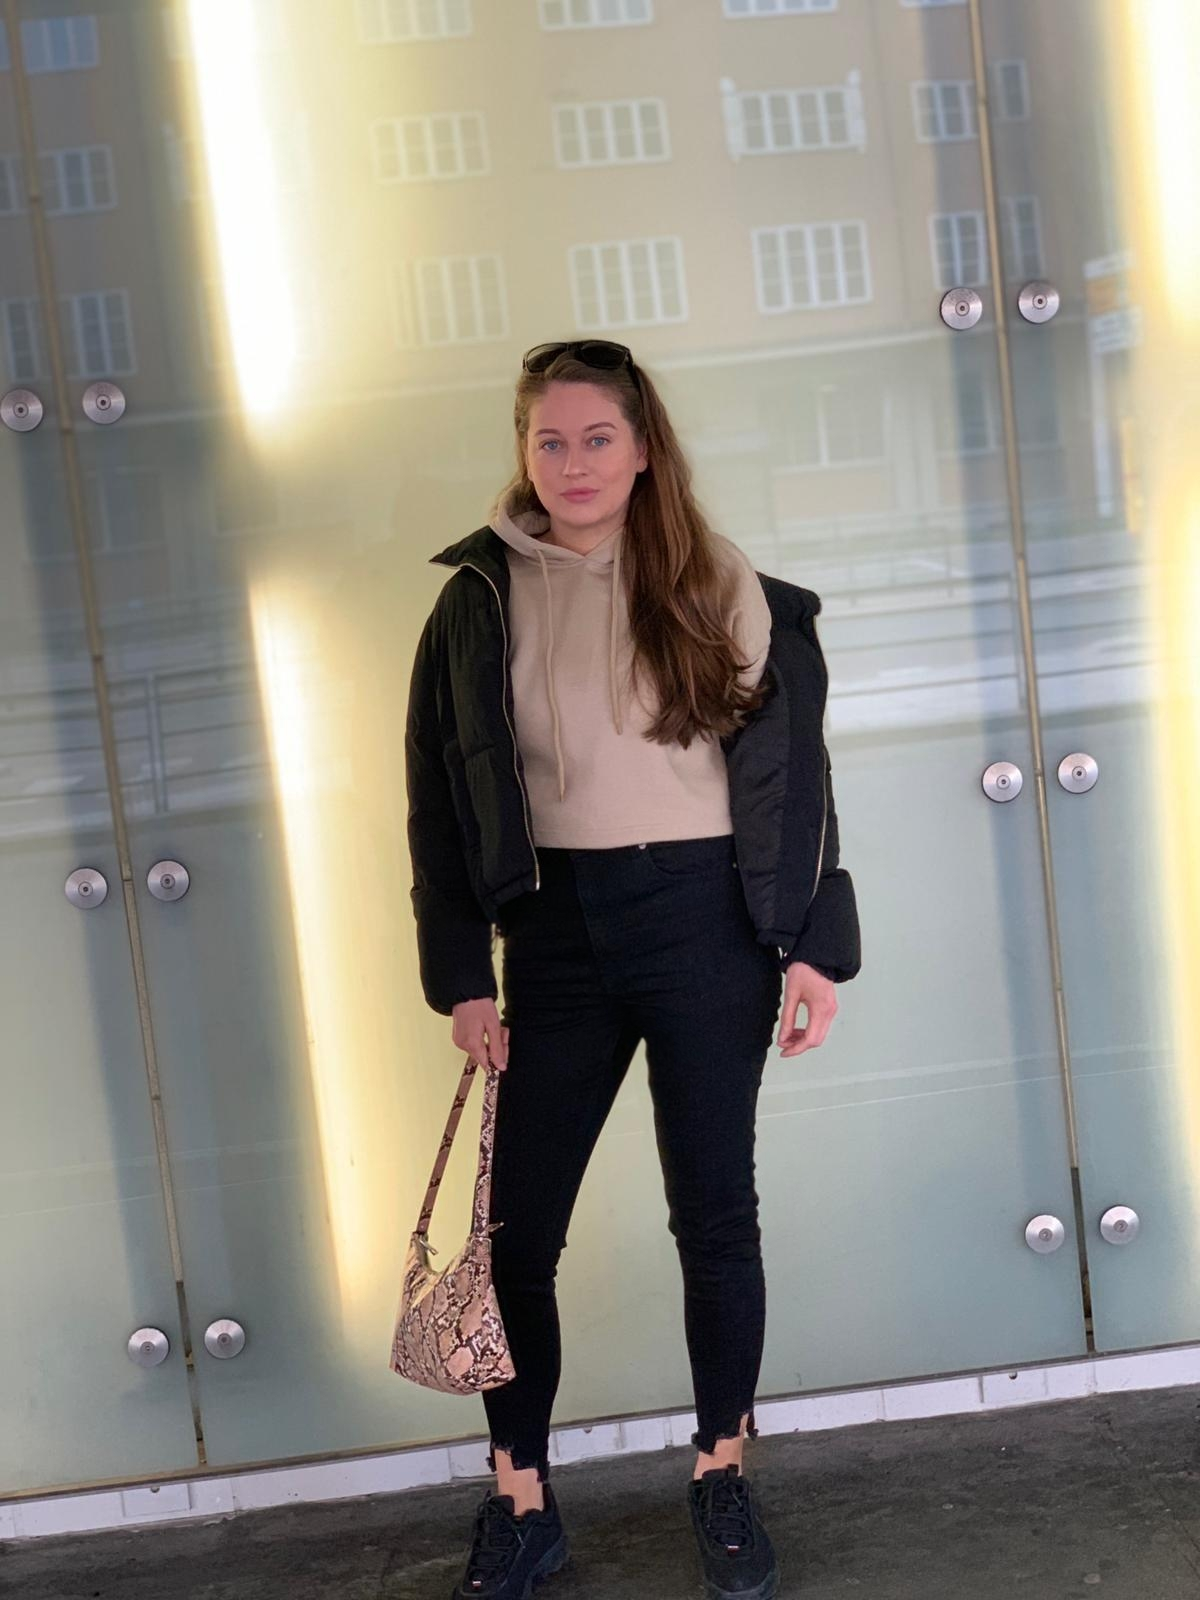 isalicious-blogg-blog-blogger-blogging-antrekk-outfit-stil-mote-trend-fashion-style-ootod-nellycom-nelly-nakd-missguided-look-sminke-makeup-drammen-outfits-hm-hm-2.jpg